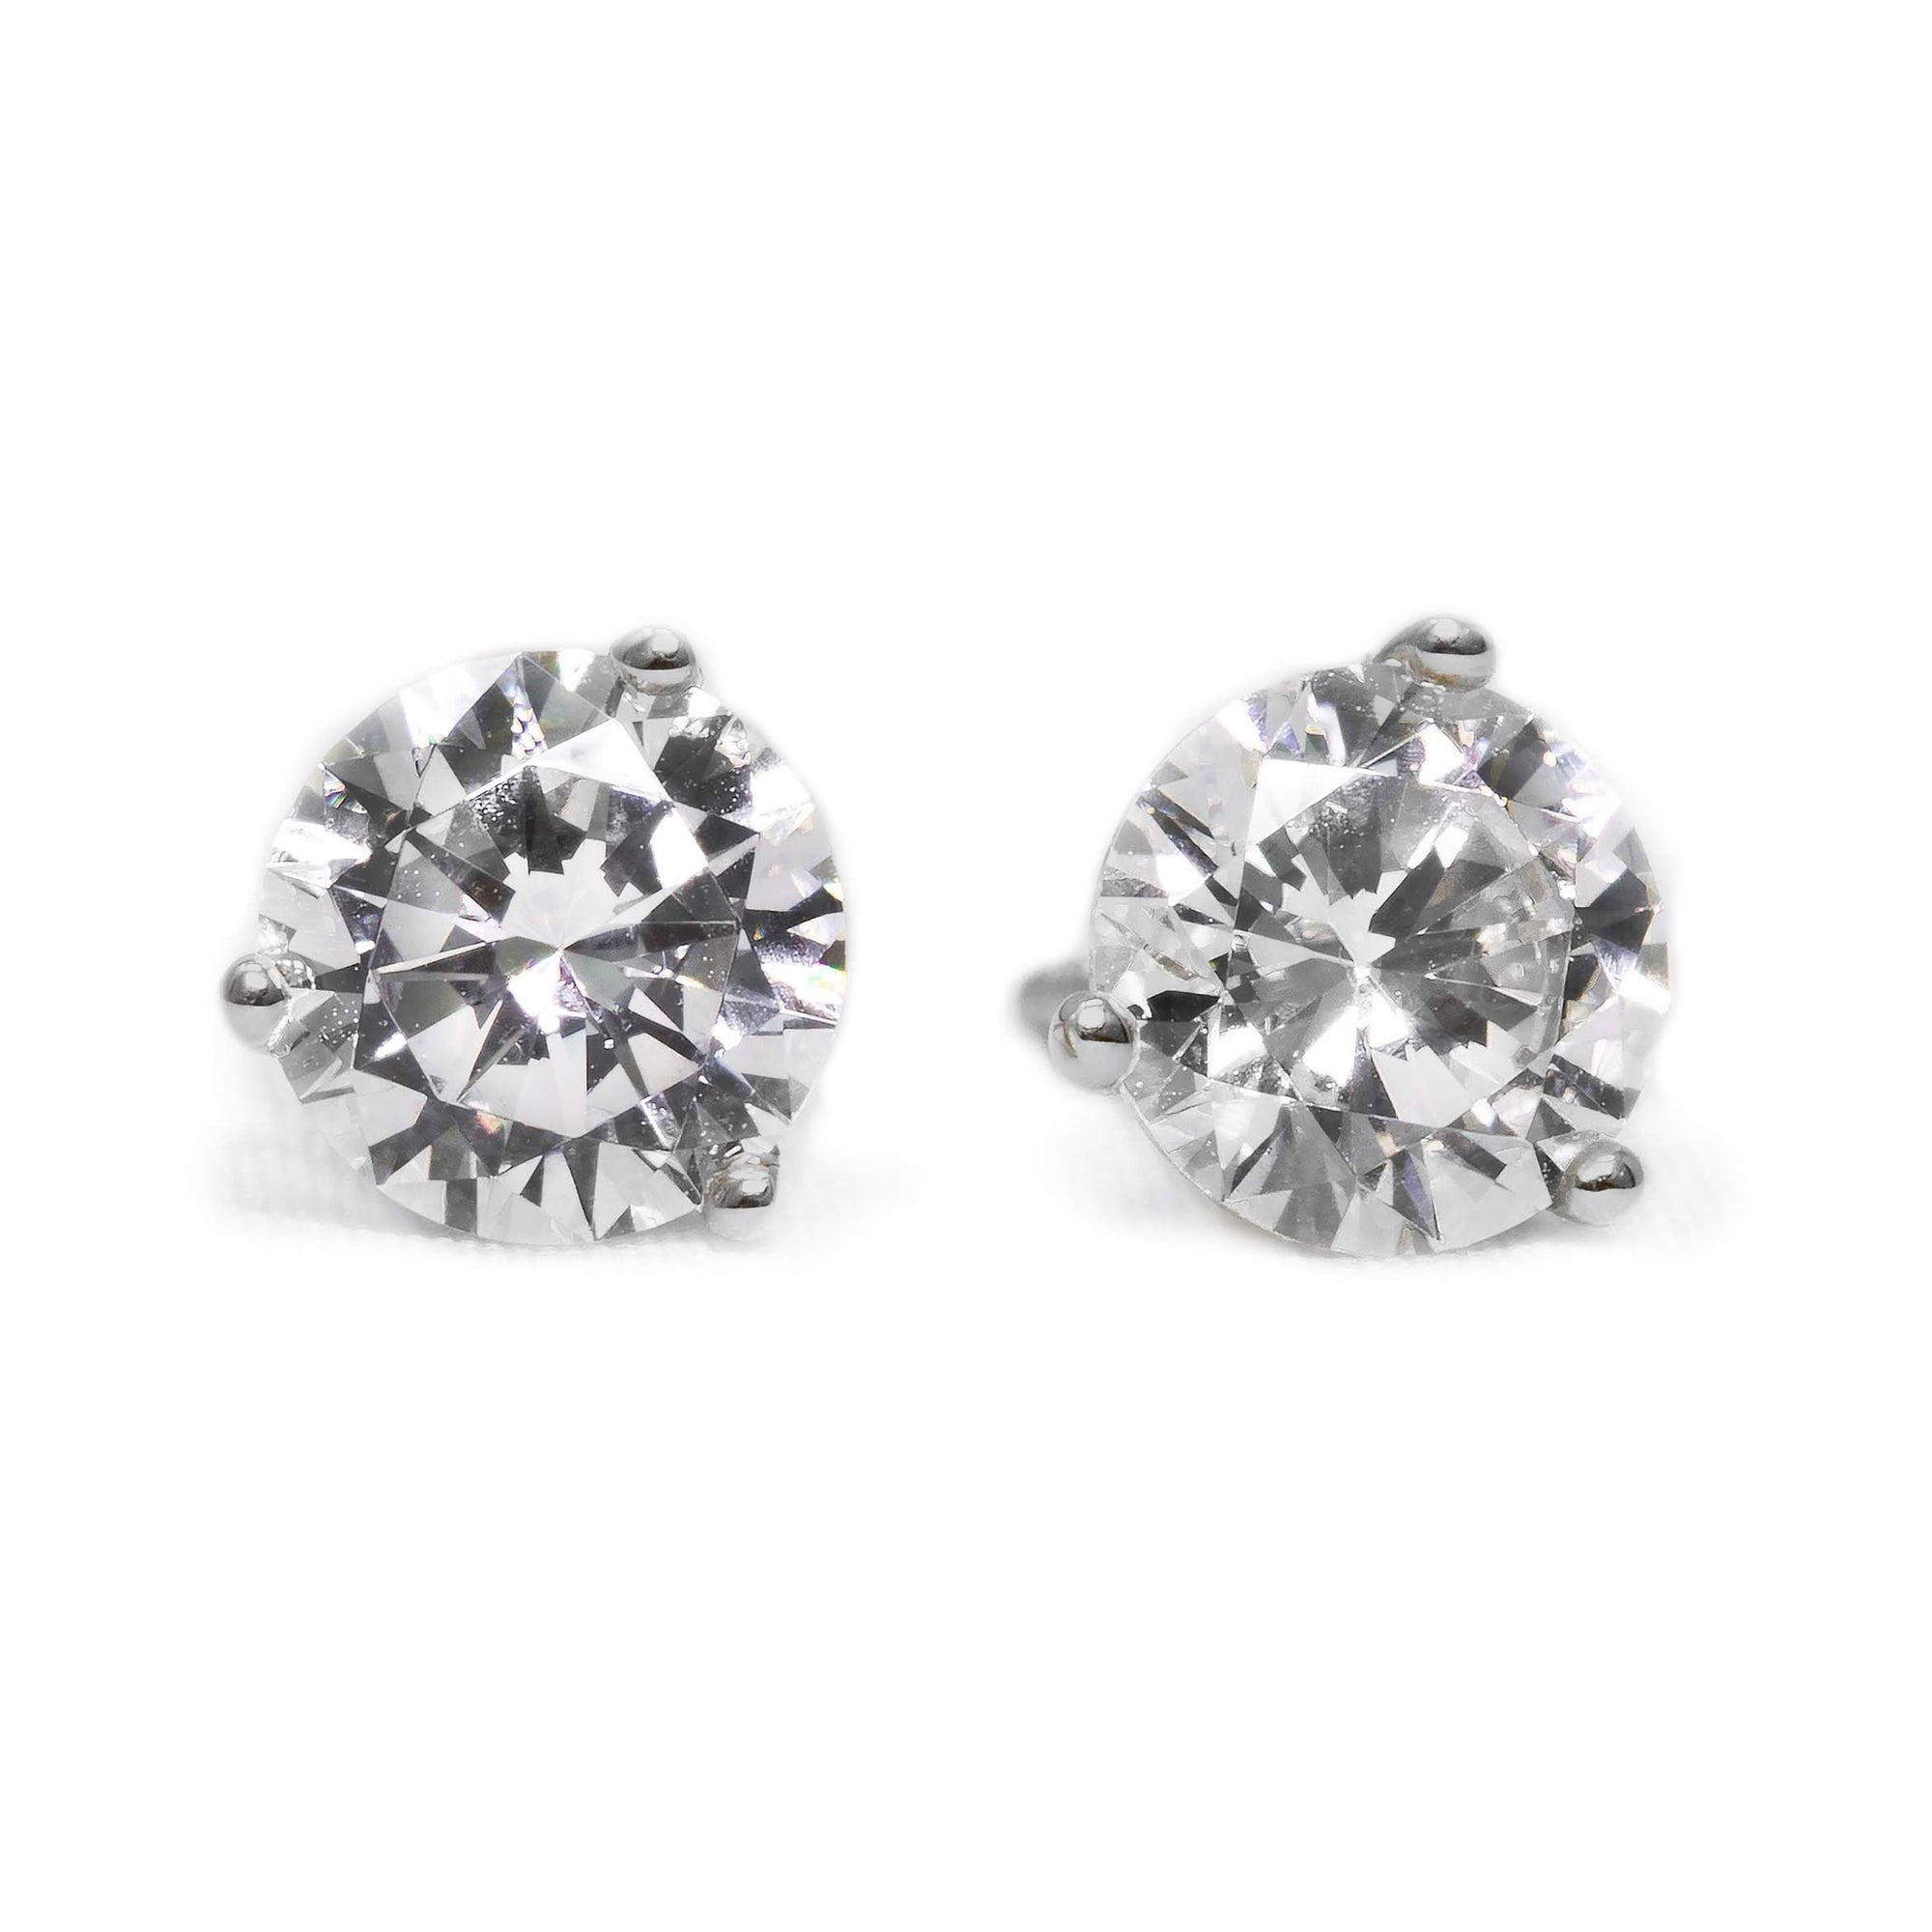 5b4dcc203 1.5 Ct Round Cut Martini Diamond Earrings Solid 14k White Gold Screw Back  Studs - Glamour